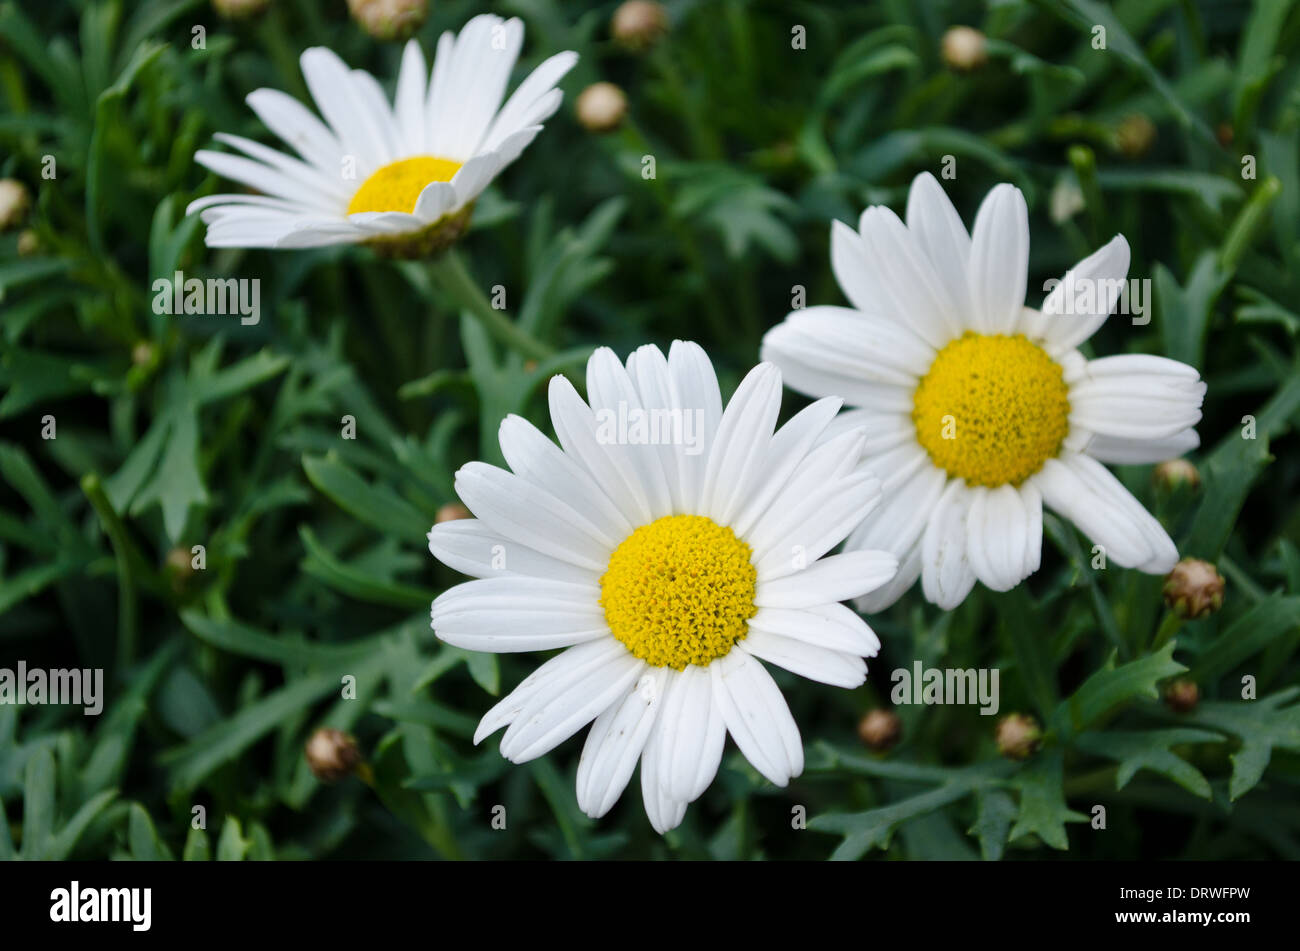 Large daisy like flowers stock photos large daisy like flowers large daisy like flowers stock image izmirmasajfo